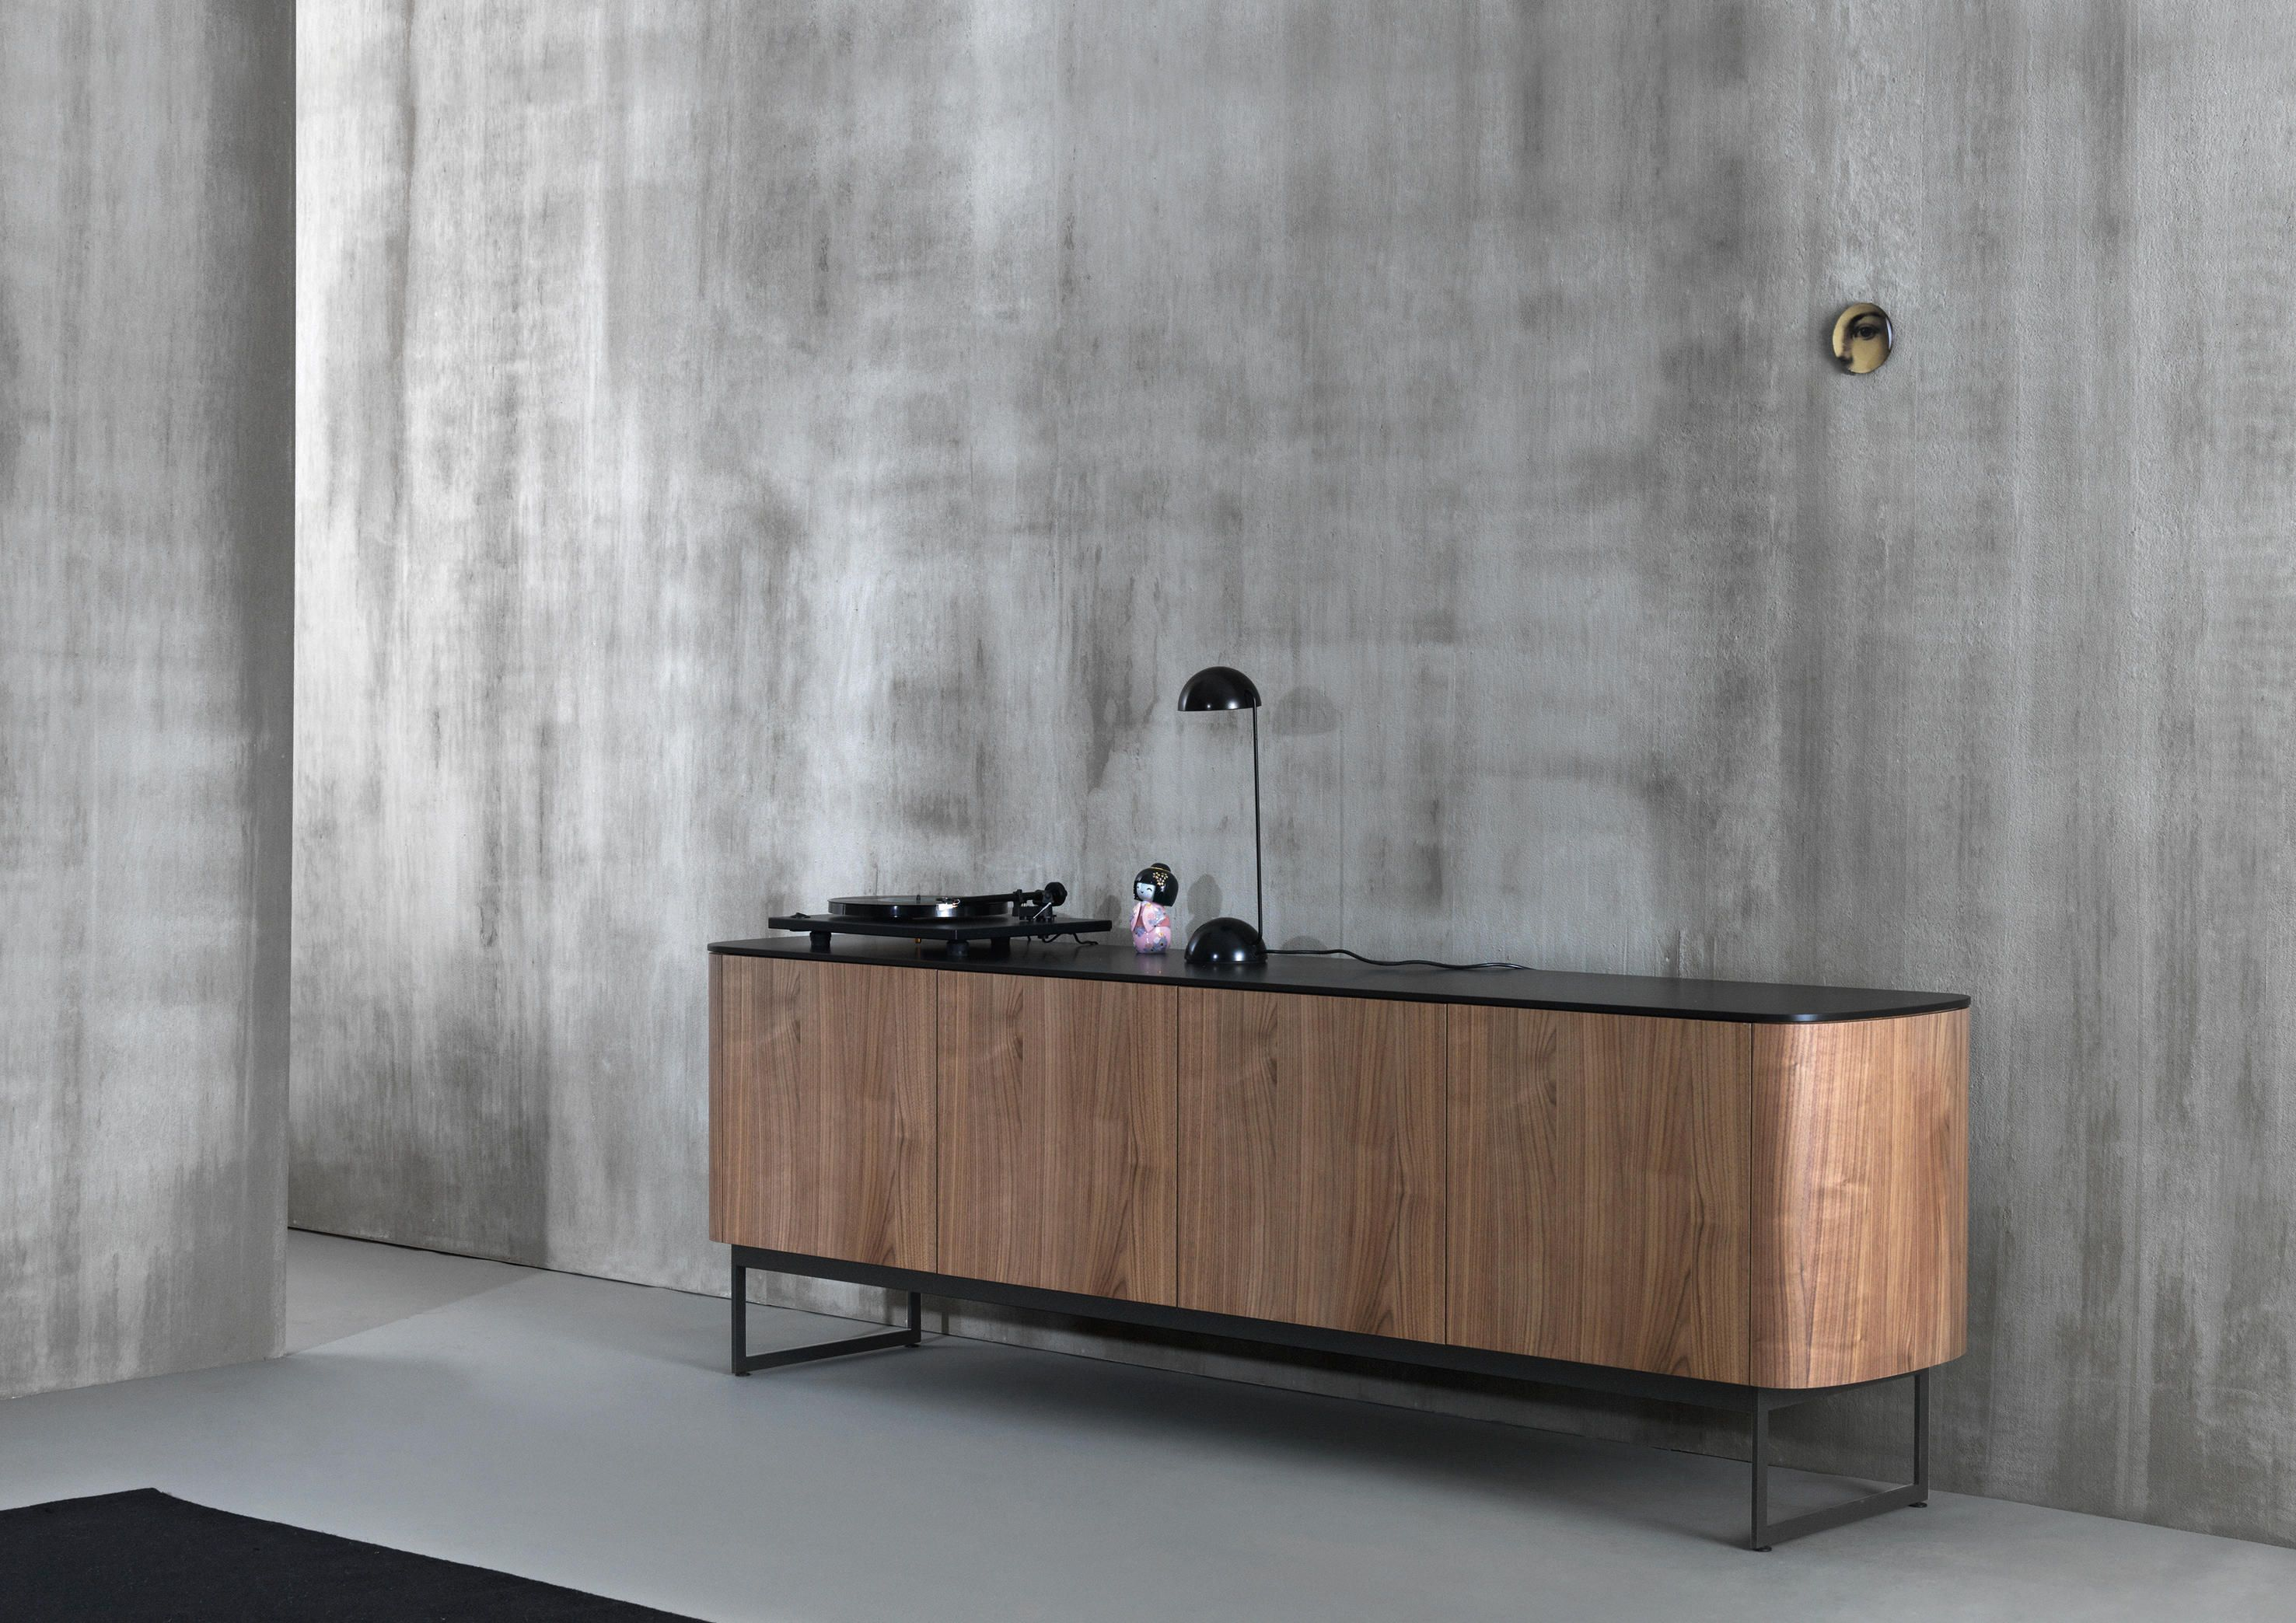 Sideview Side Designer Sideboards From Caccaro All Information High Resolution Images Cads Catalogues Contact In Mobilya Tasarimi Mobilya Tasarim